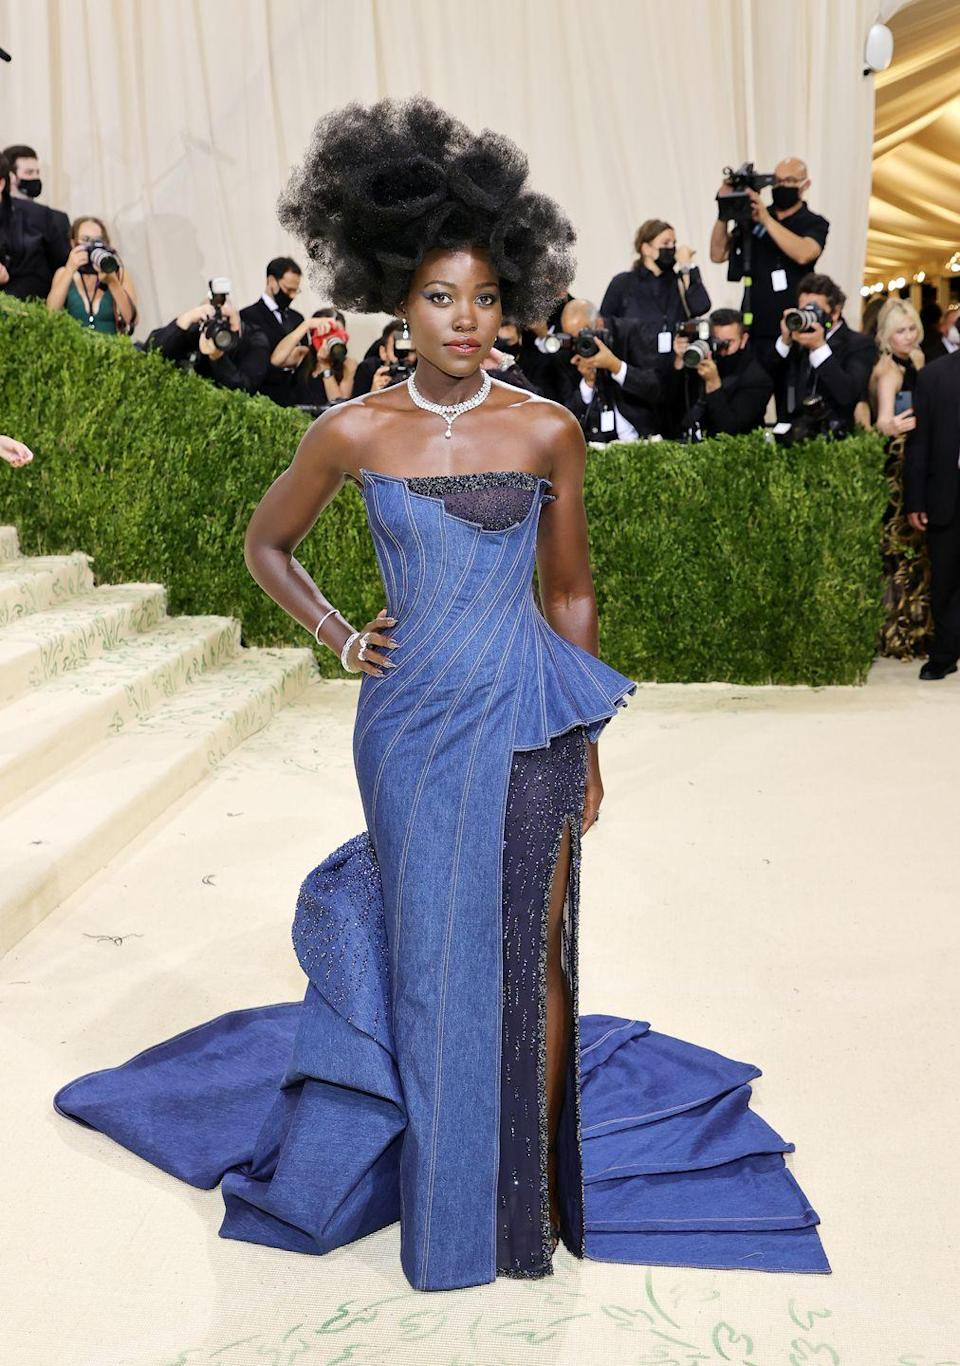 <p>It has been far too long since Lupita Nyong'o has graced the world's red carpet and to our utter delight, she came back to this one in gorgeously perfect style. The denim gown is about as American as style gets and the glorious swirl of hair takes the whole look somewhere new and interesting. </p>